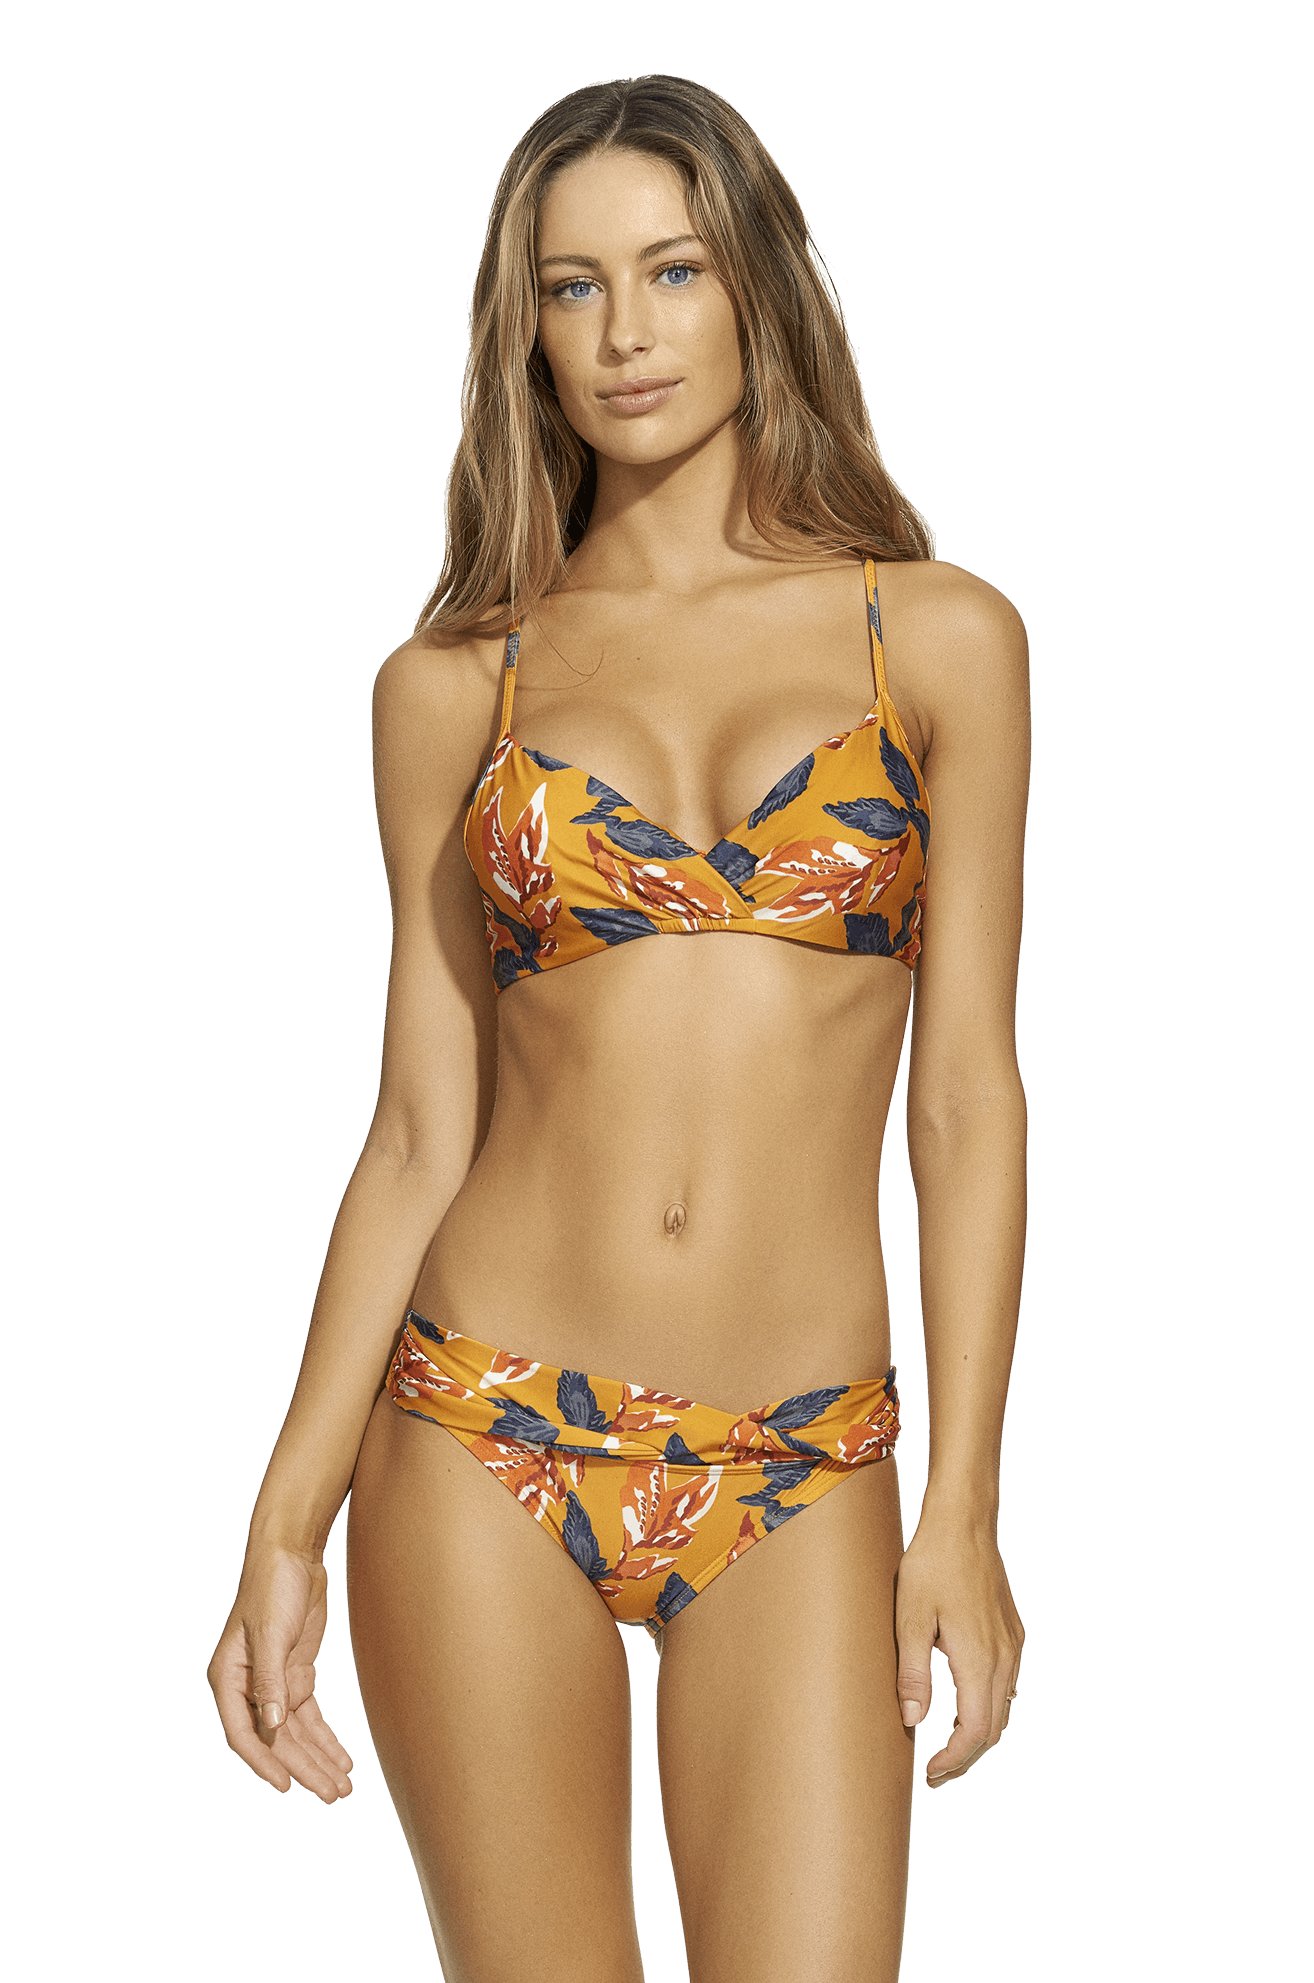 image royalty free Of ursula andress swimsuit. Bikini transparent white